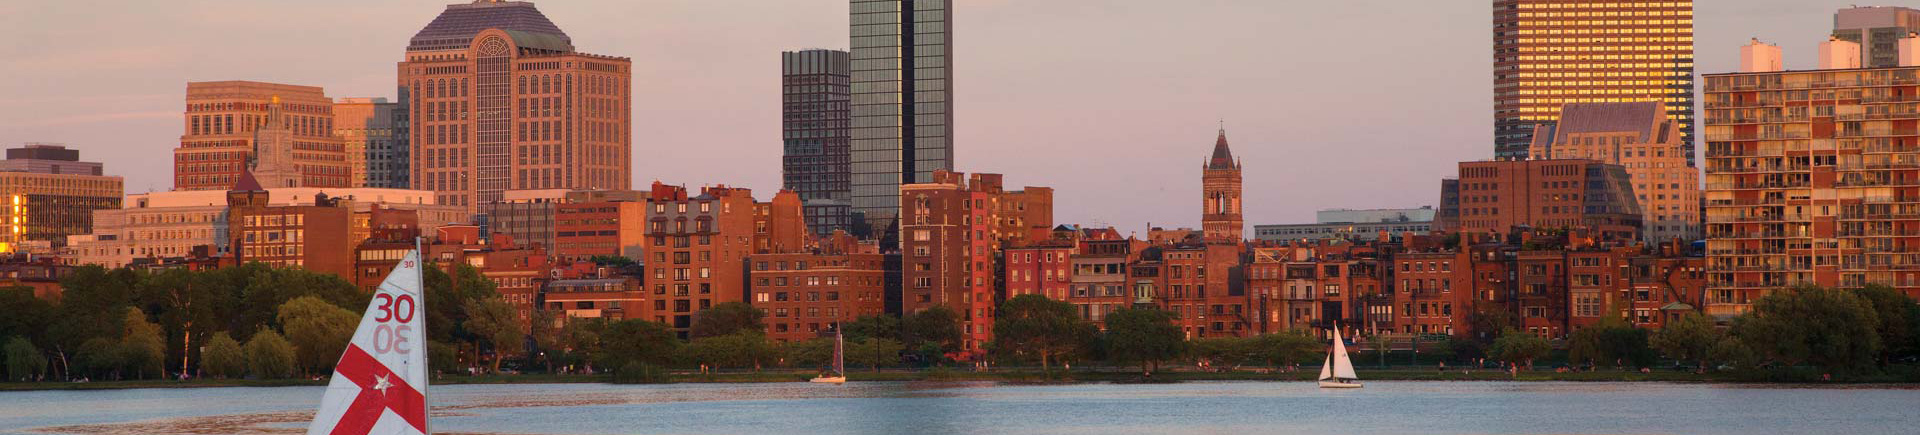 Vivo Apartment Homes in Cambridge, MA - Near Charles River